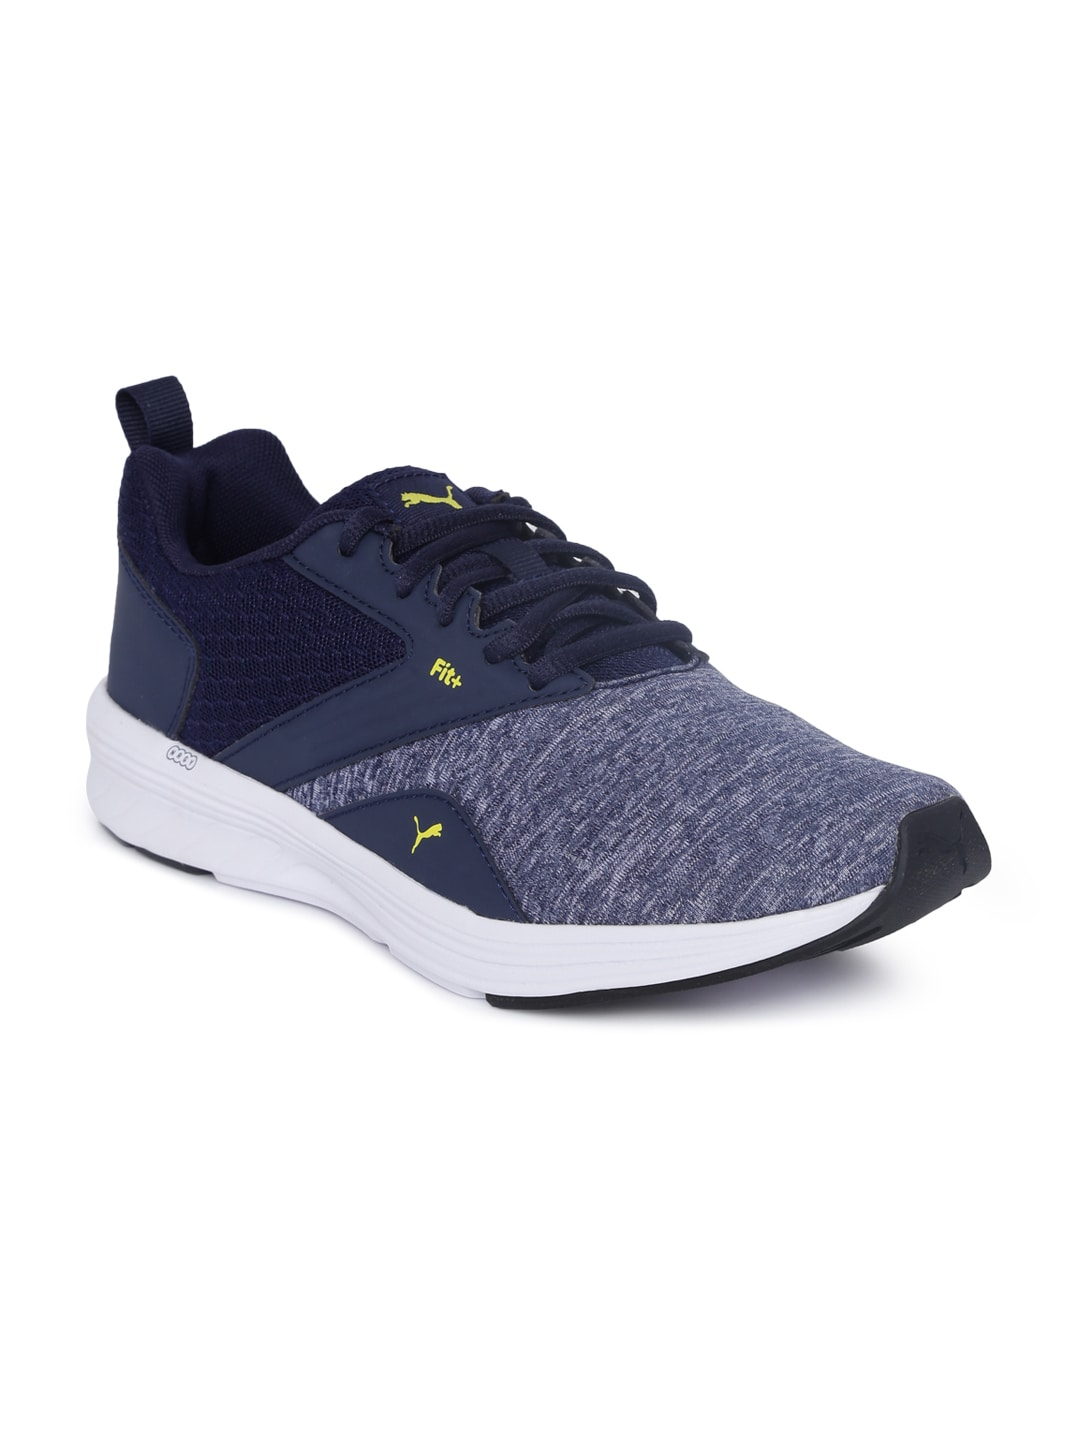 super popular 4e9d7 1dadc Footwear - Shop for Men, Women  Kids Footwear Online  Myntra